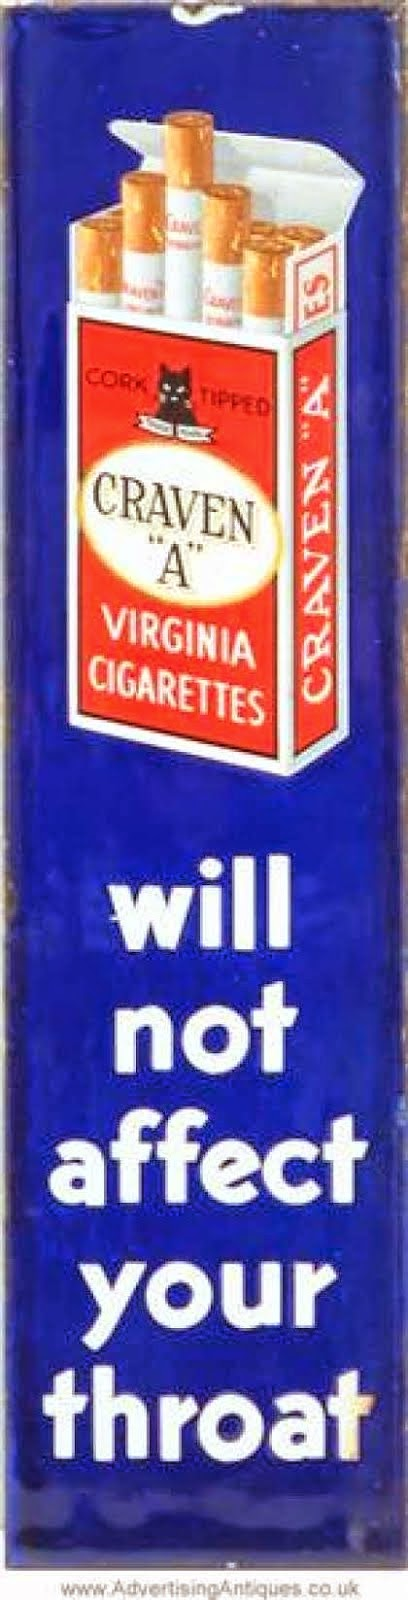 Where can buy Pall Mall cigarettes